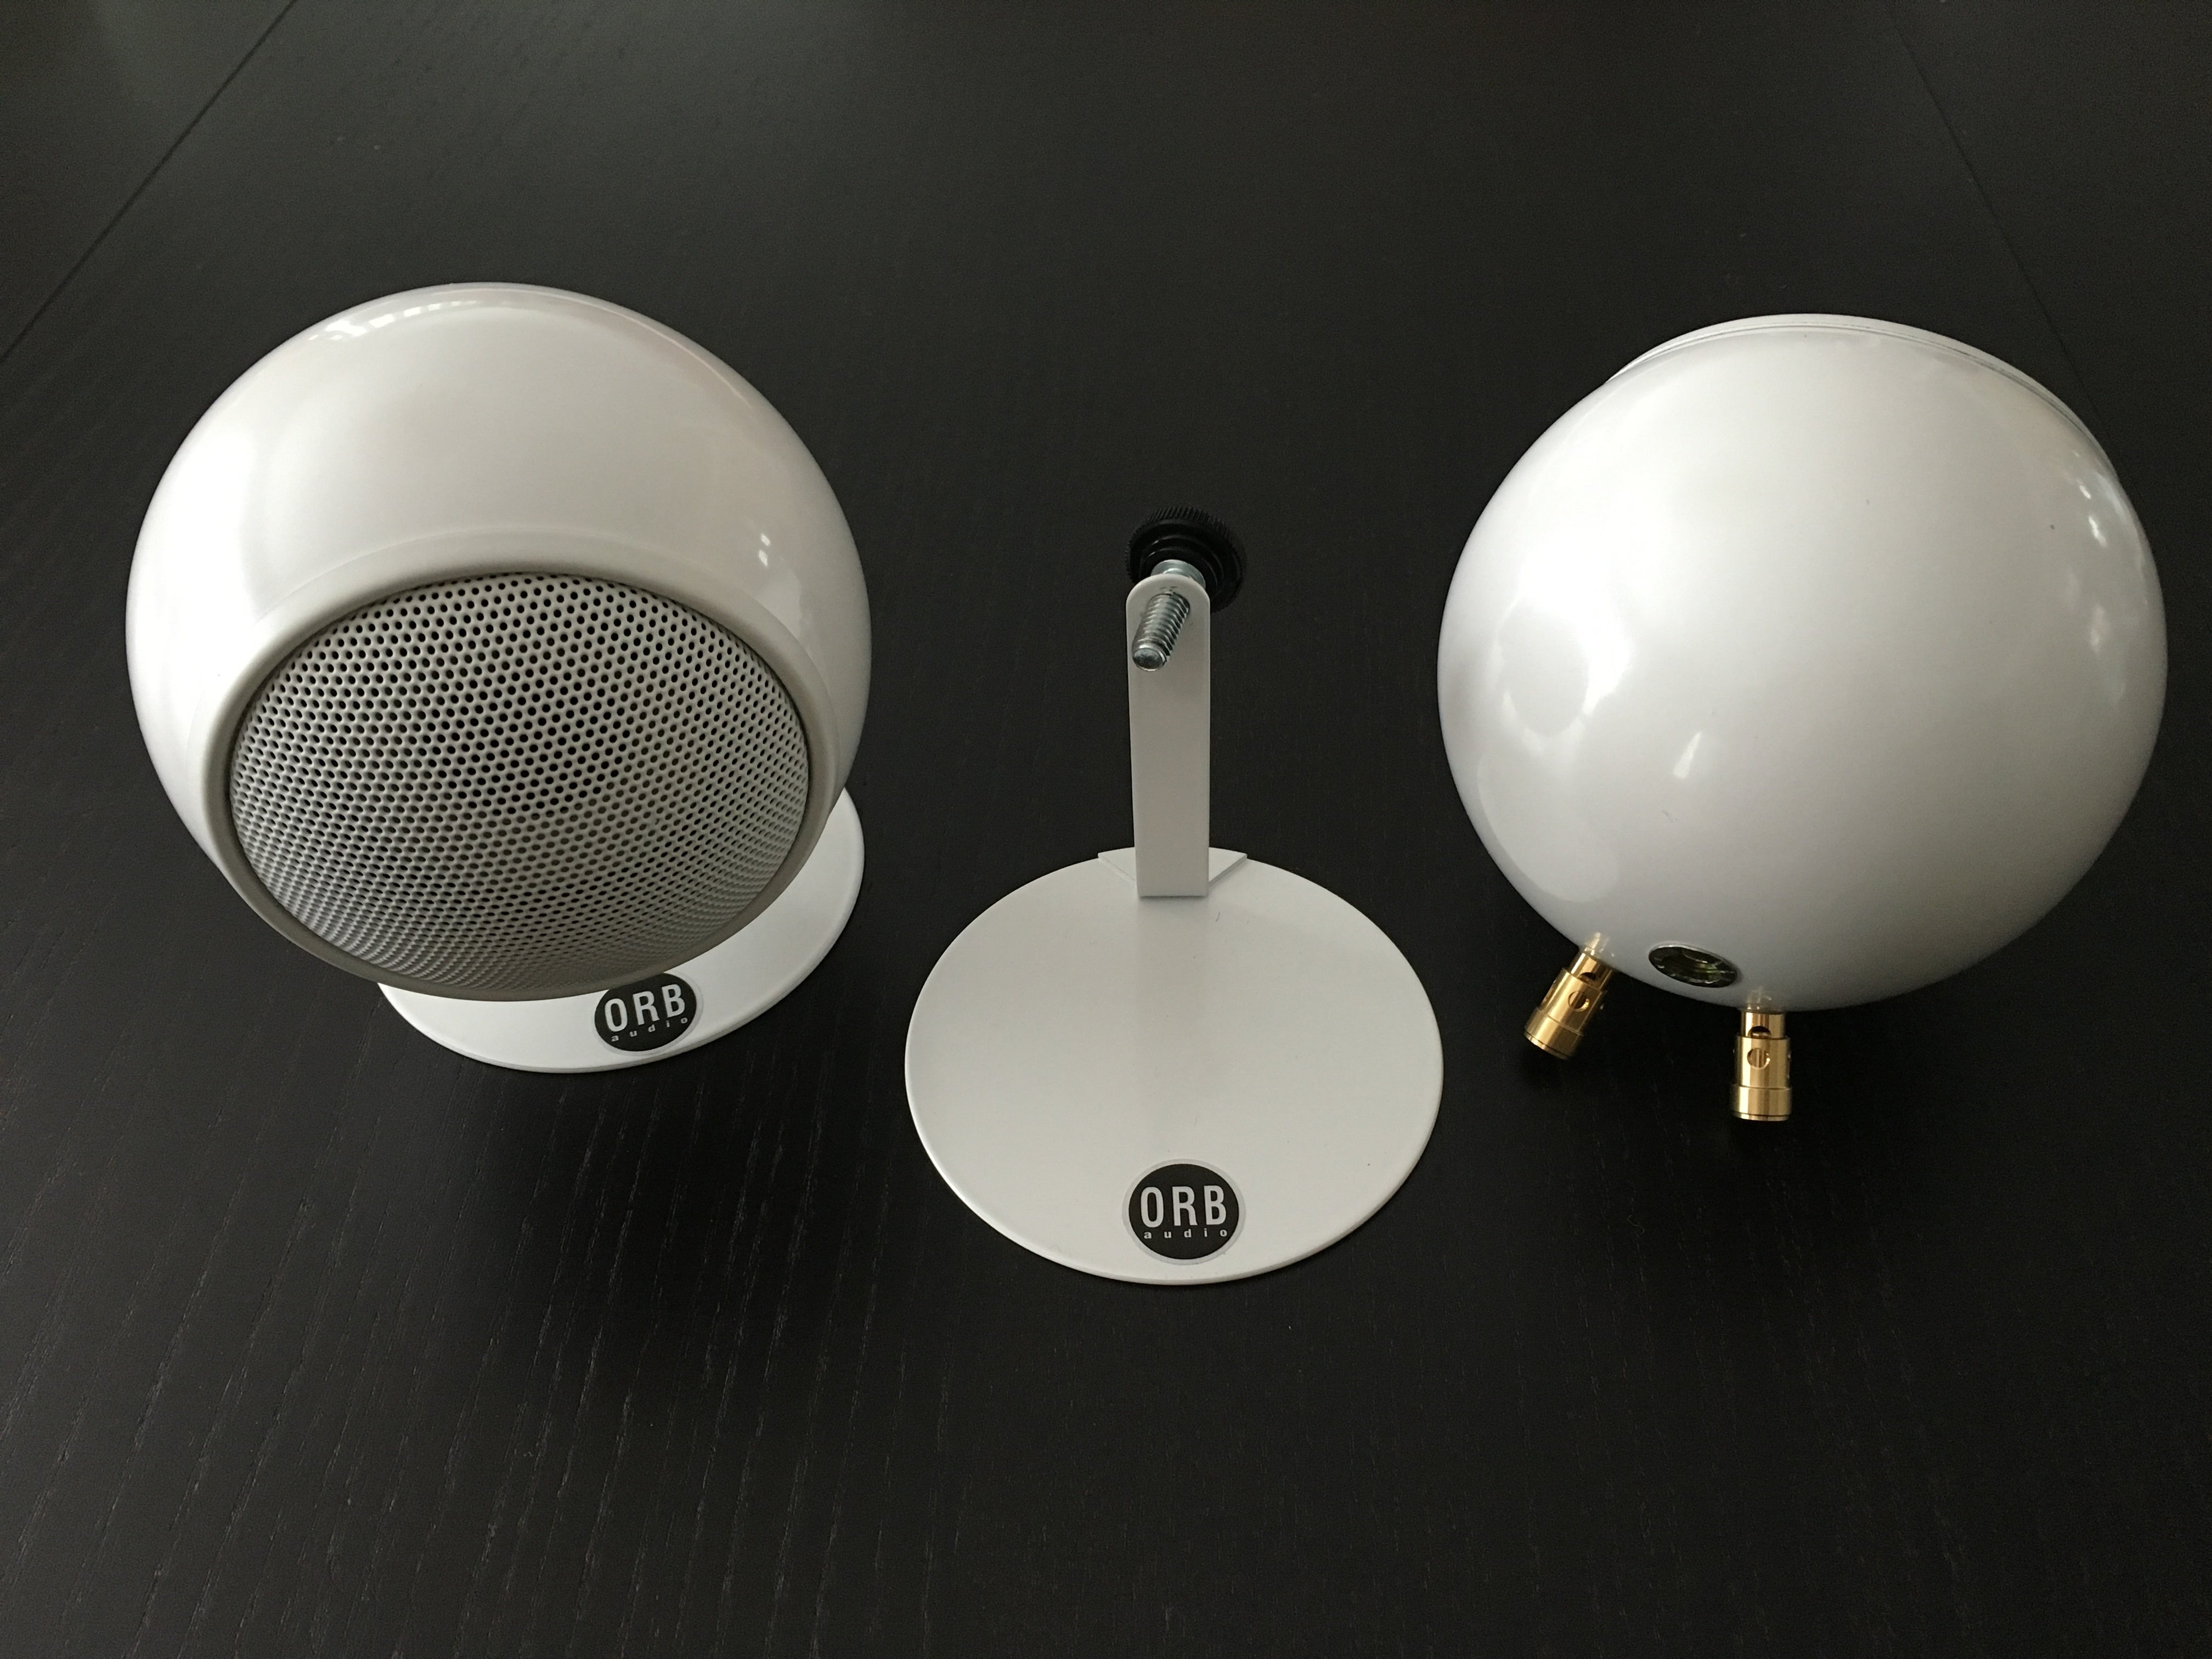 Orb Audio Complete Home Theater System review: A pint ...